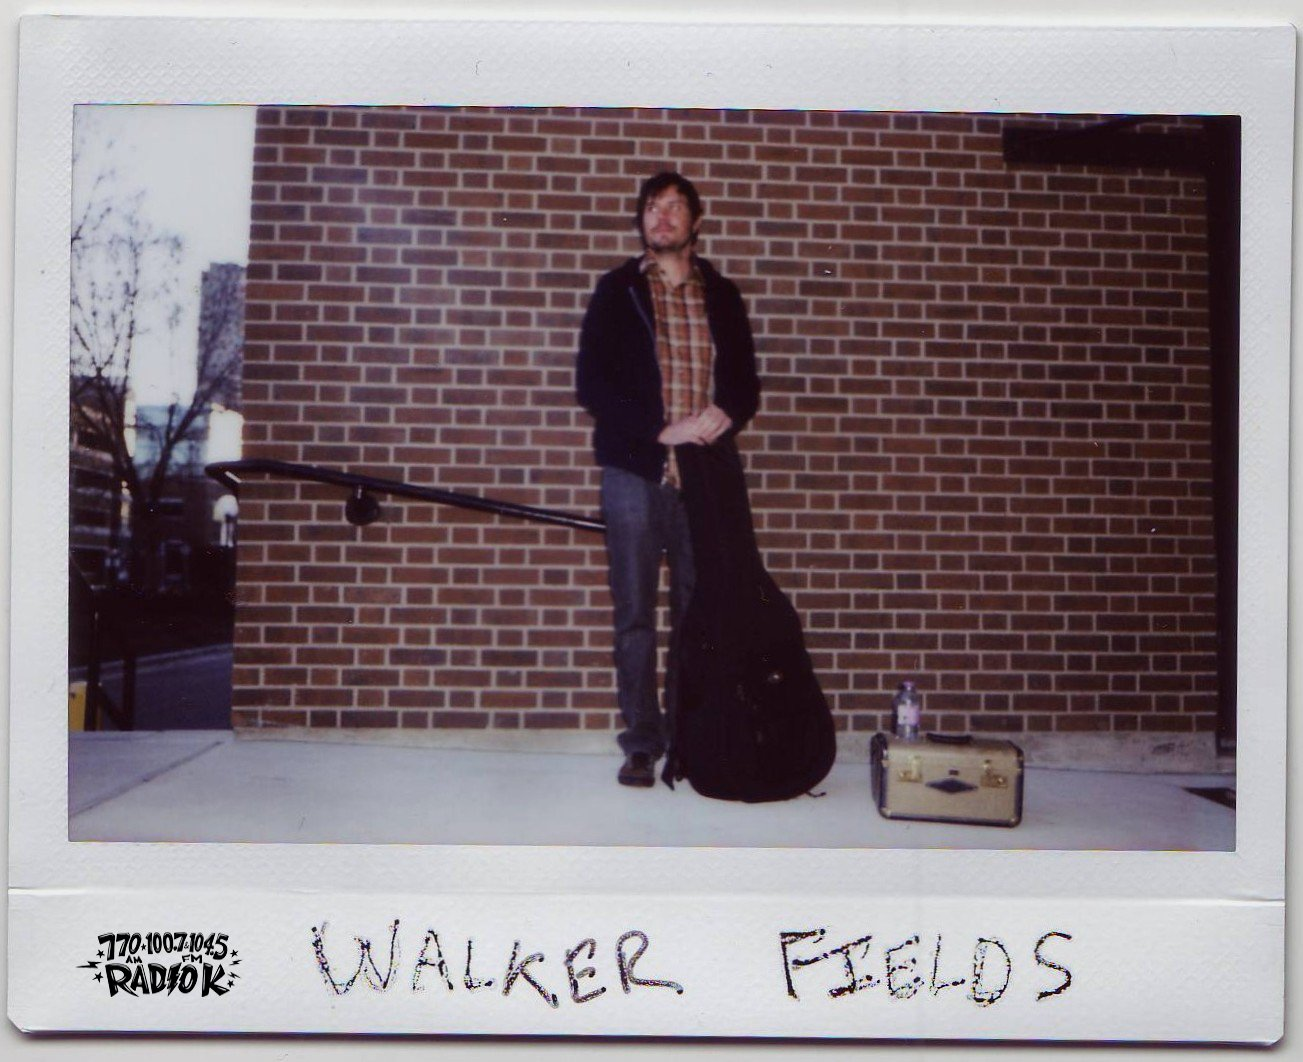 Walker Fields